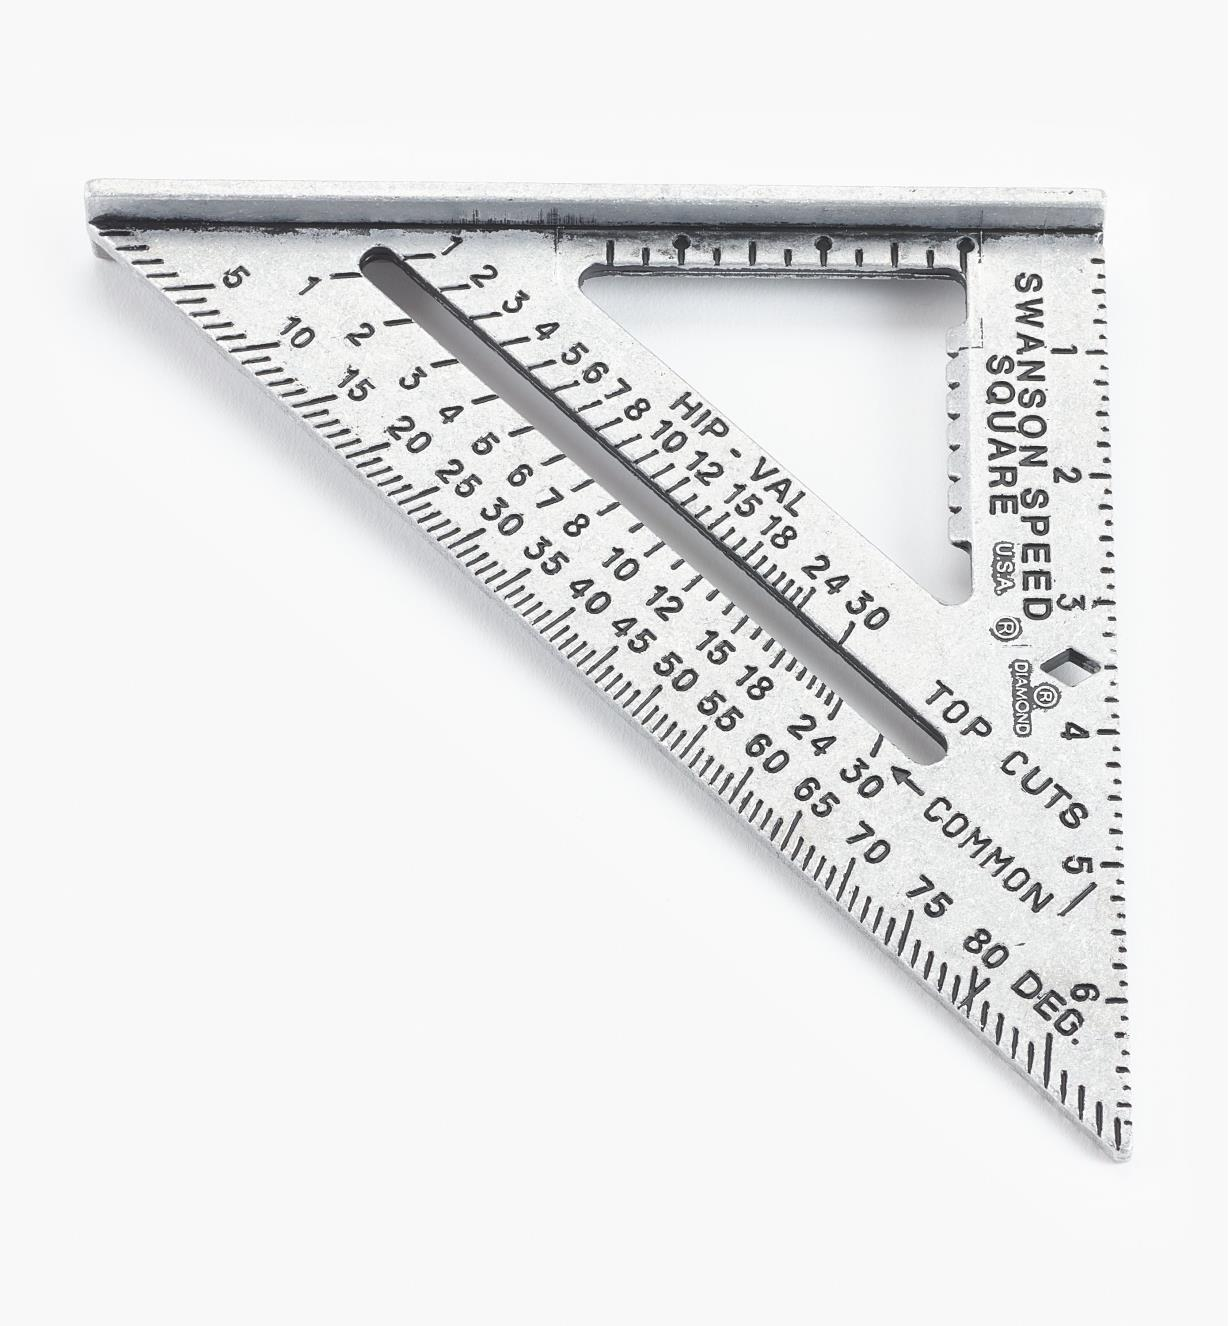 61N0202 - Standard Rafter Angle Square